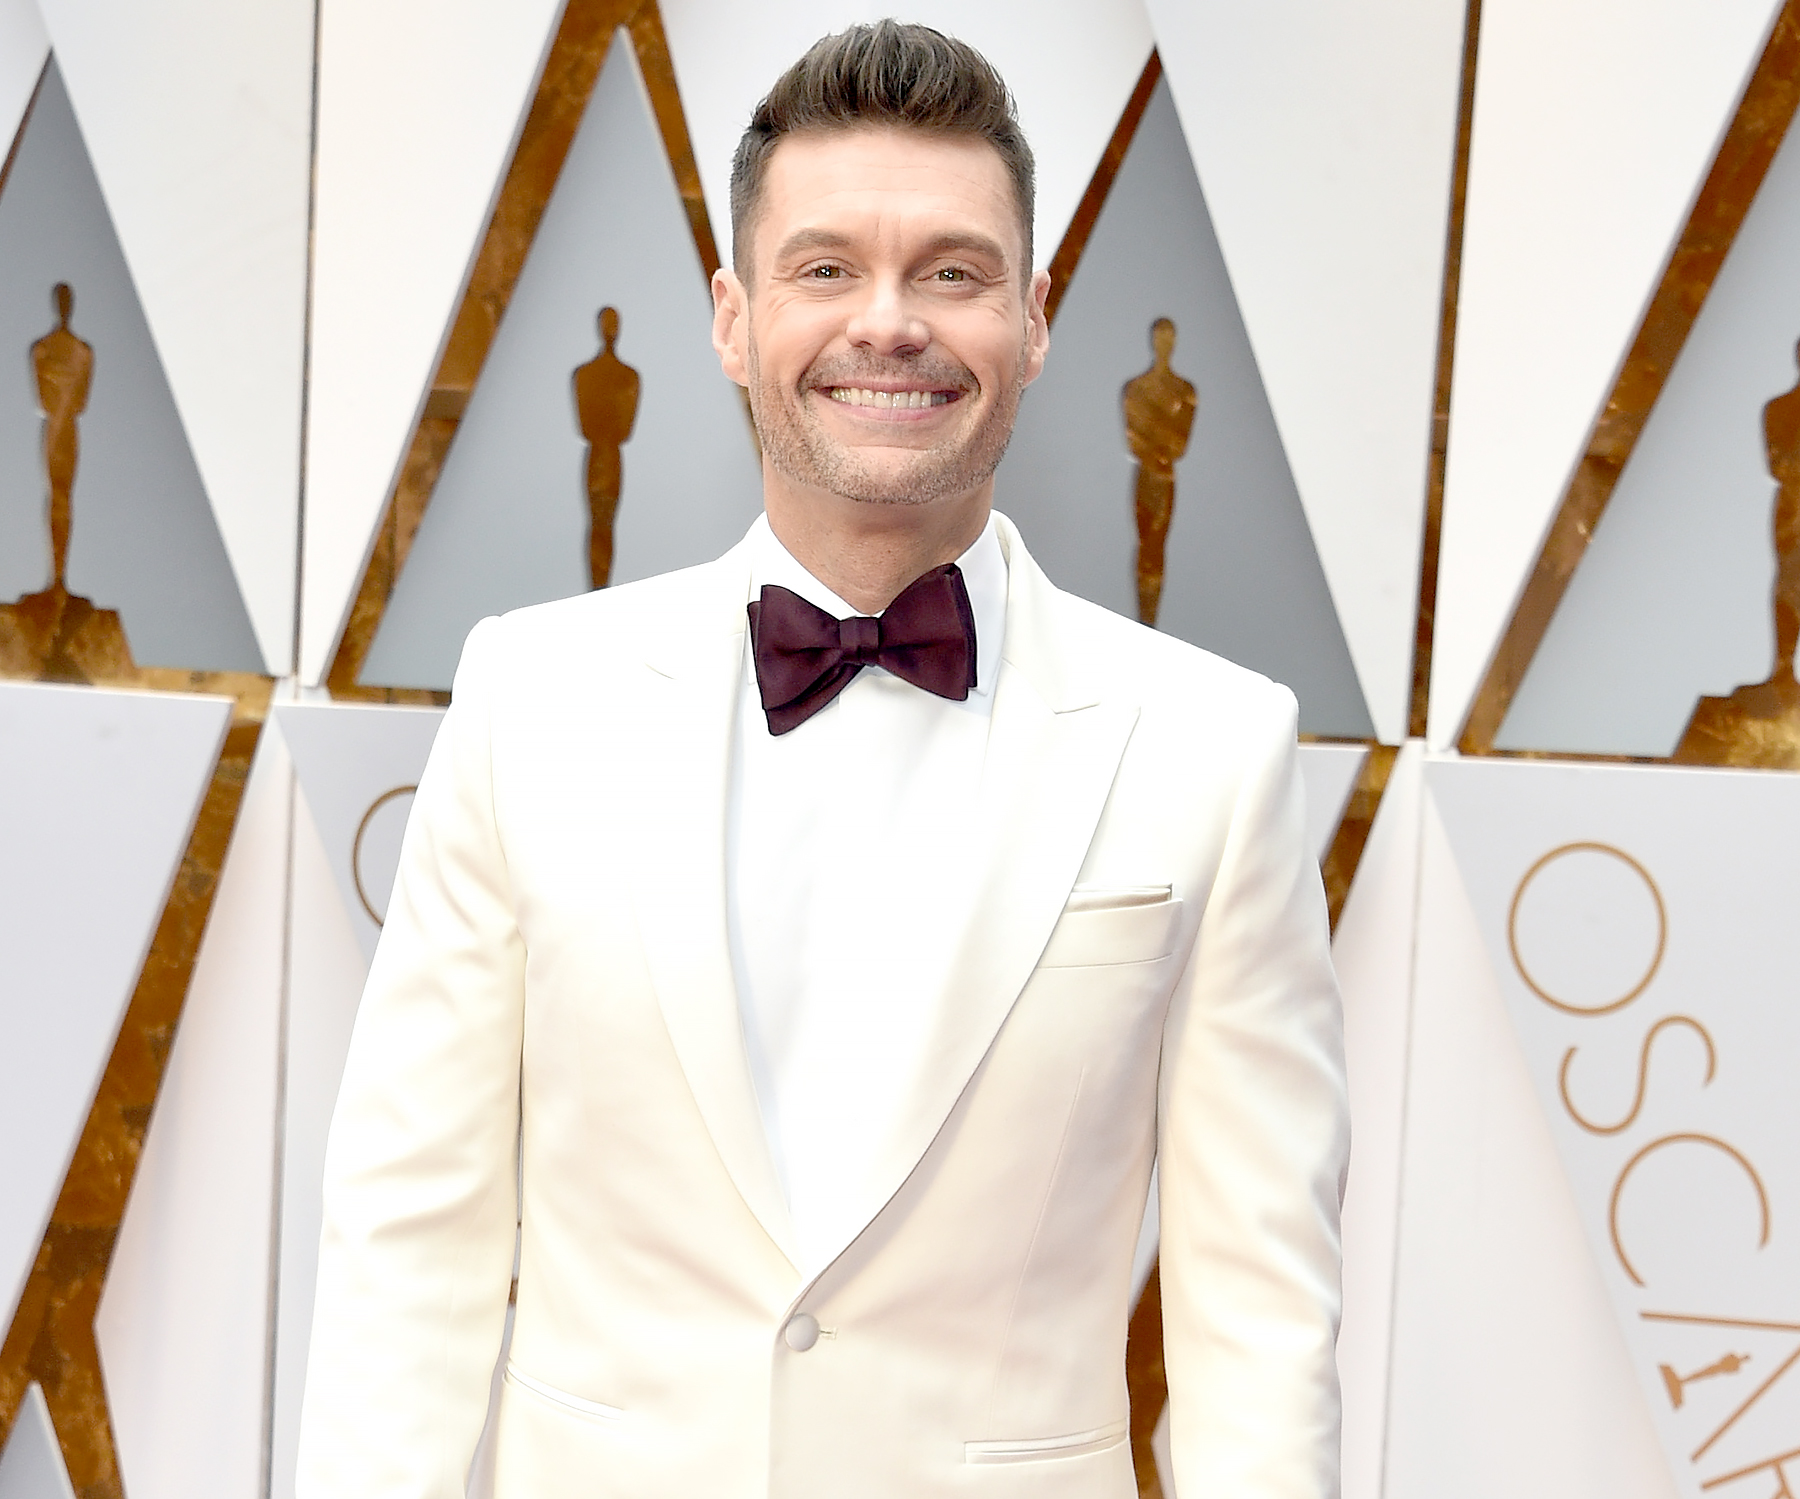 Did Taraji P. Henson drag Ryan Seacrest on the Oscars red carpet?